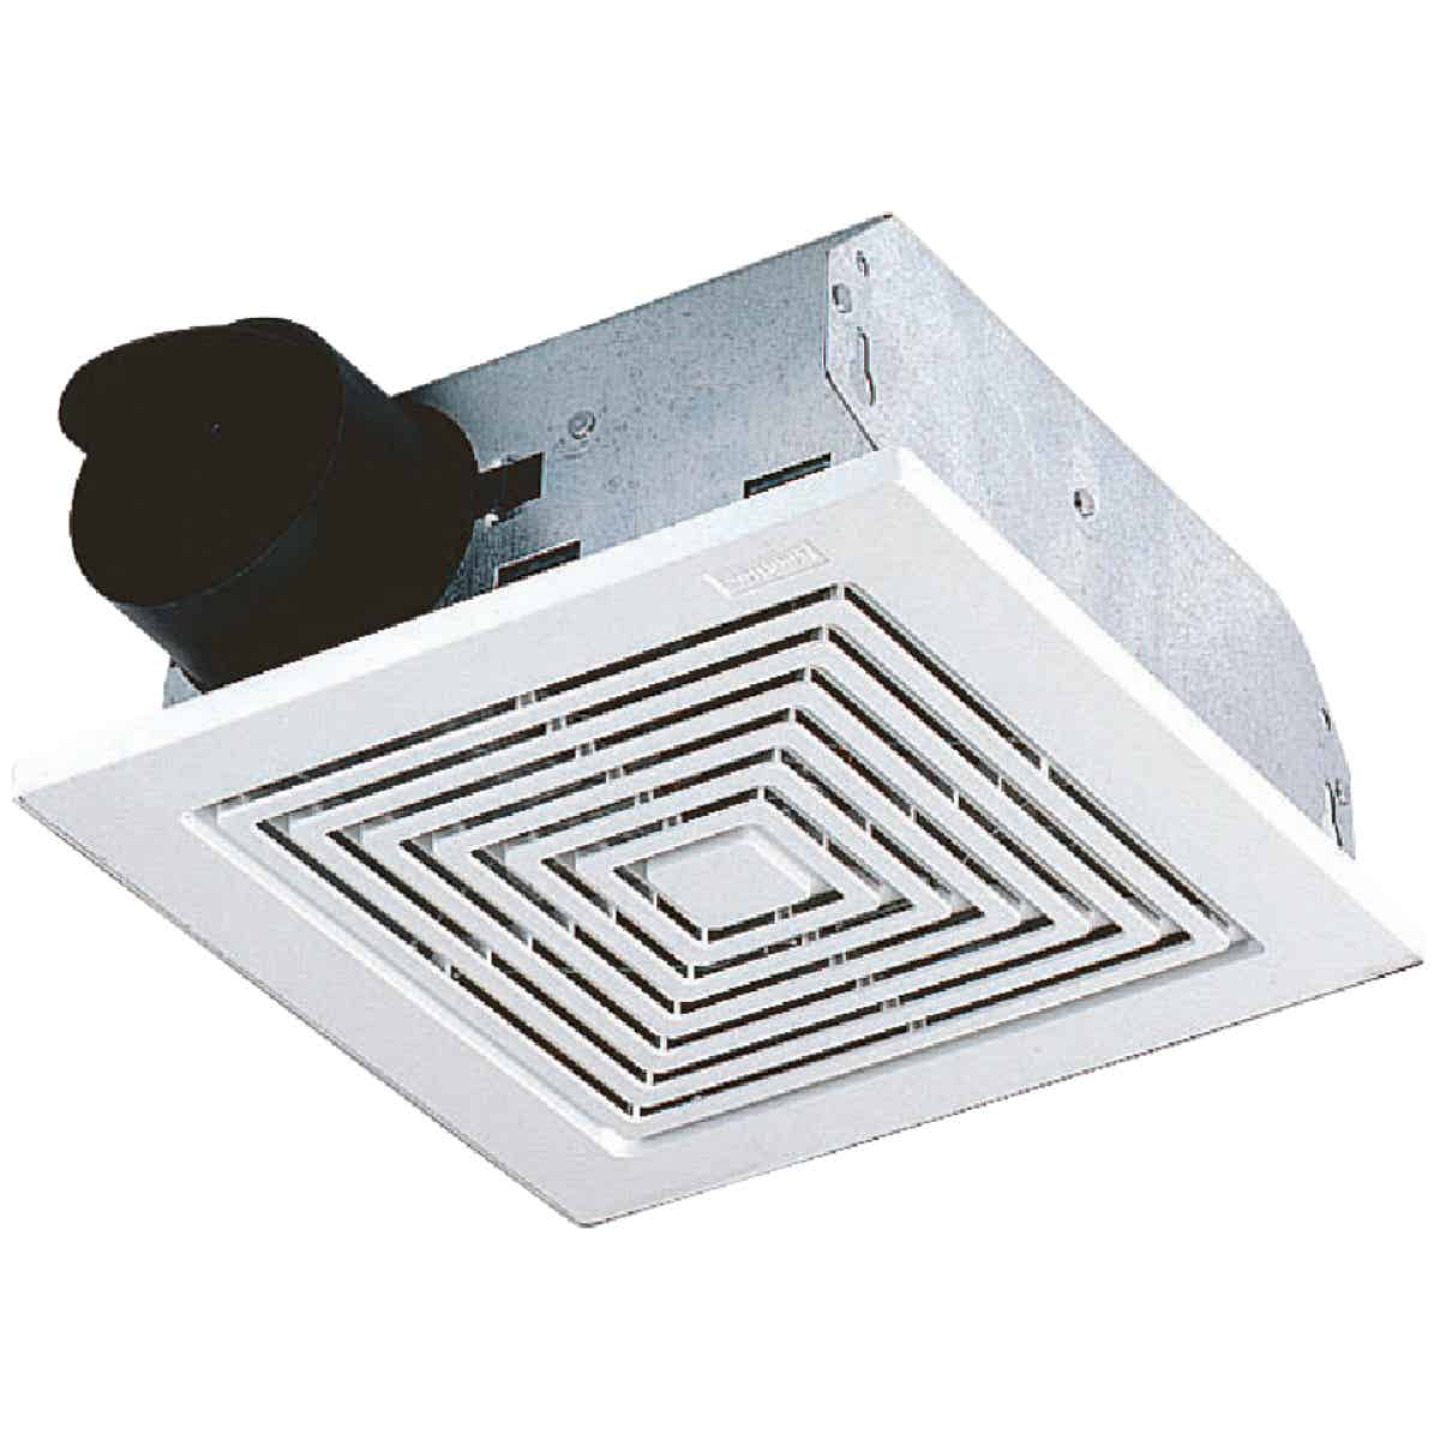 Broan 50 CFM 4.0 Sones 120V Bath Exhaust Fan Image 1